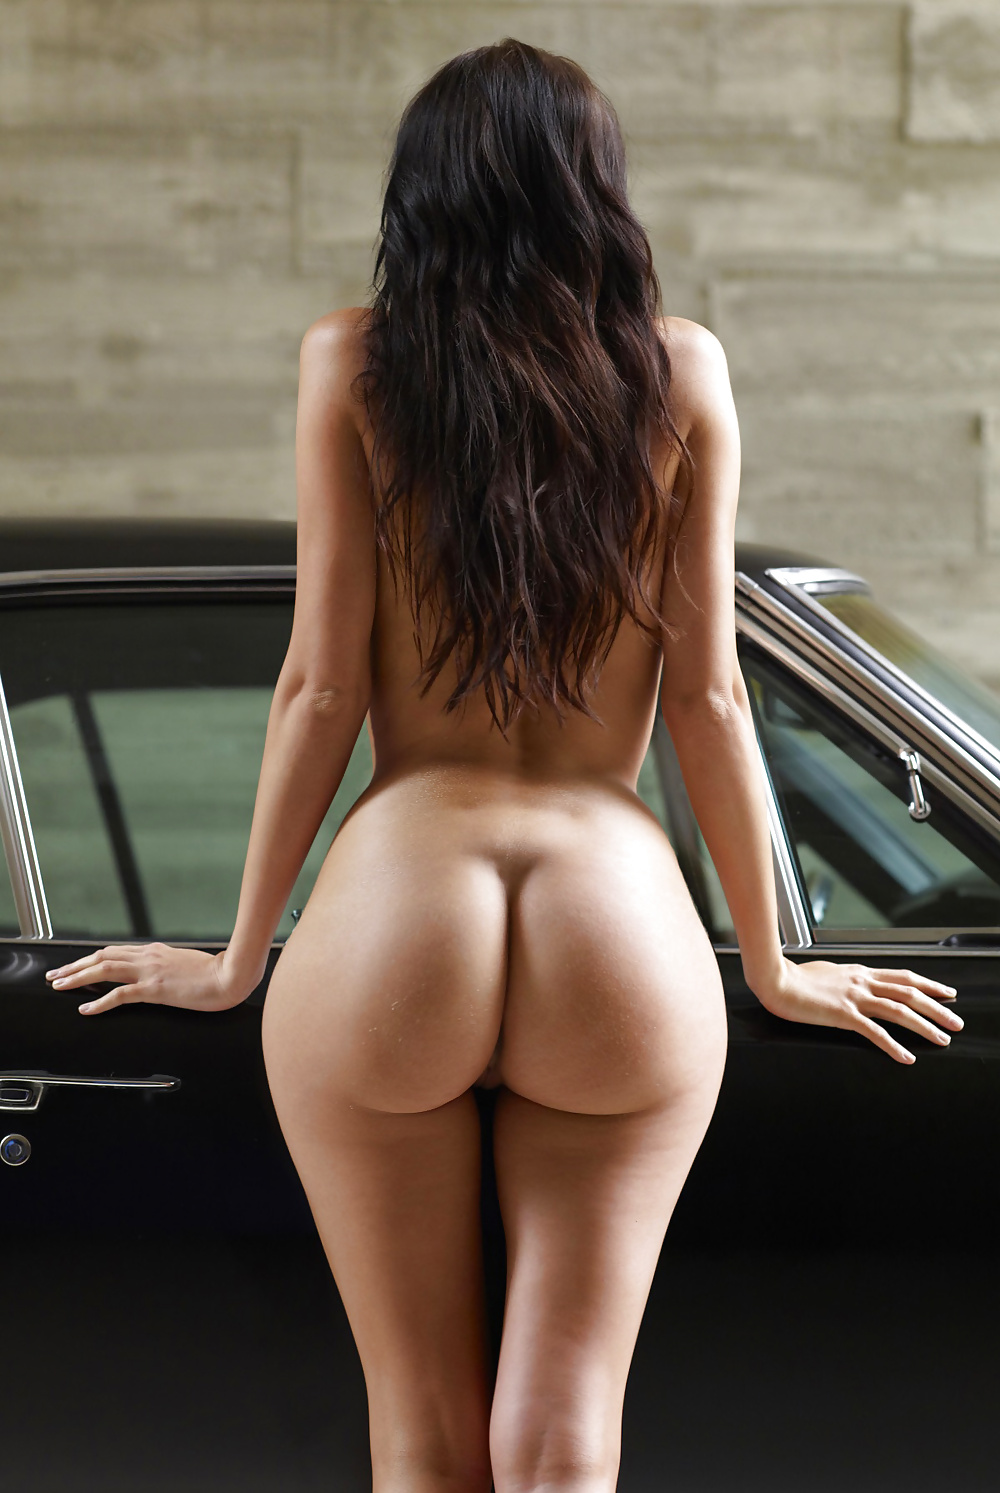 Butts conpletely naked, super hot sexy nude chick